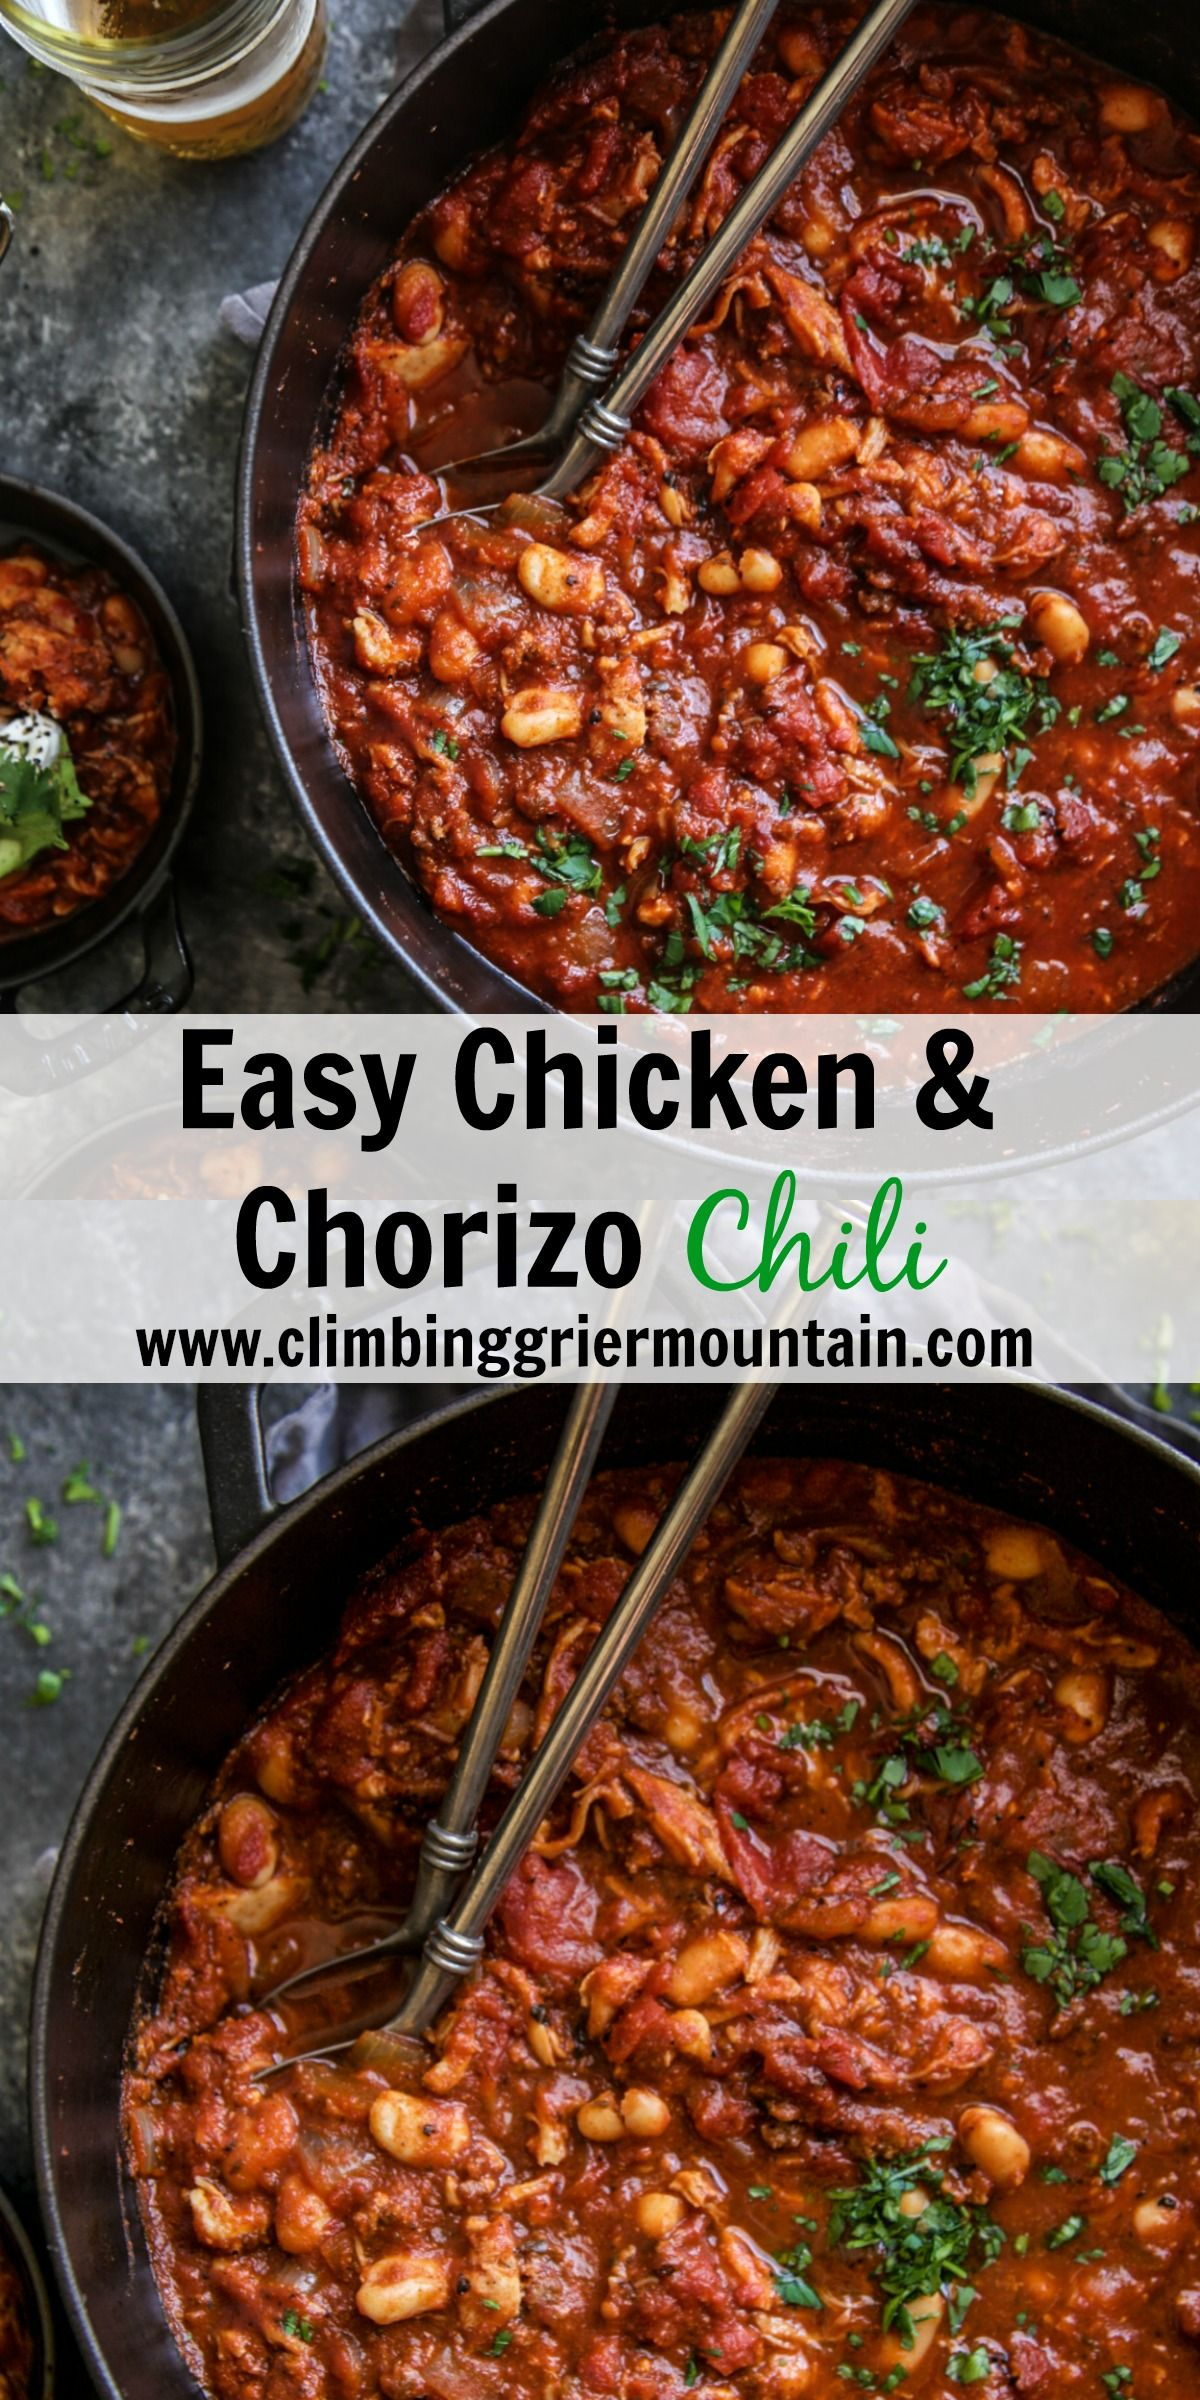 Easy Chicken Chorizo Chili Is An Easy And Flavorful One Pot Dish Perfect For Feeding Large Crowds During The Wi Chicken Chorizo Chicken Recipes Chorizo Chili